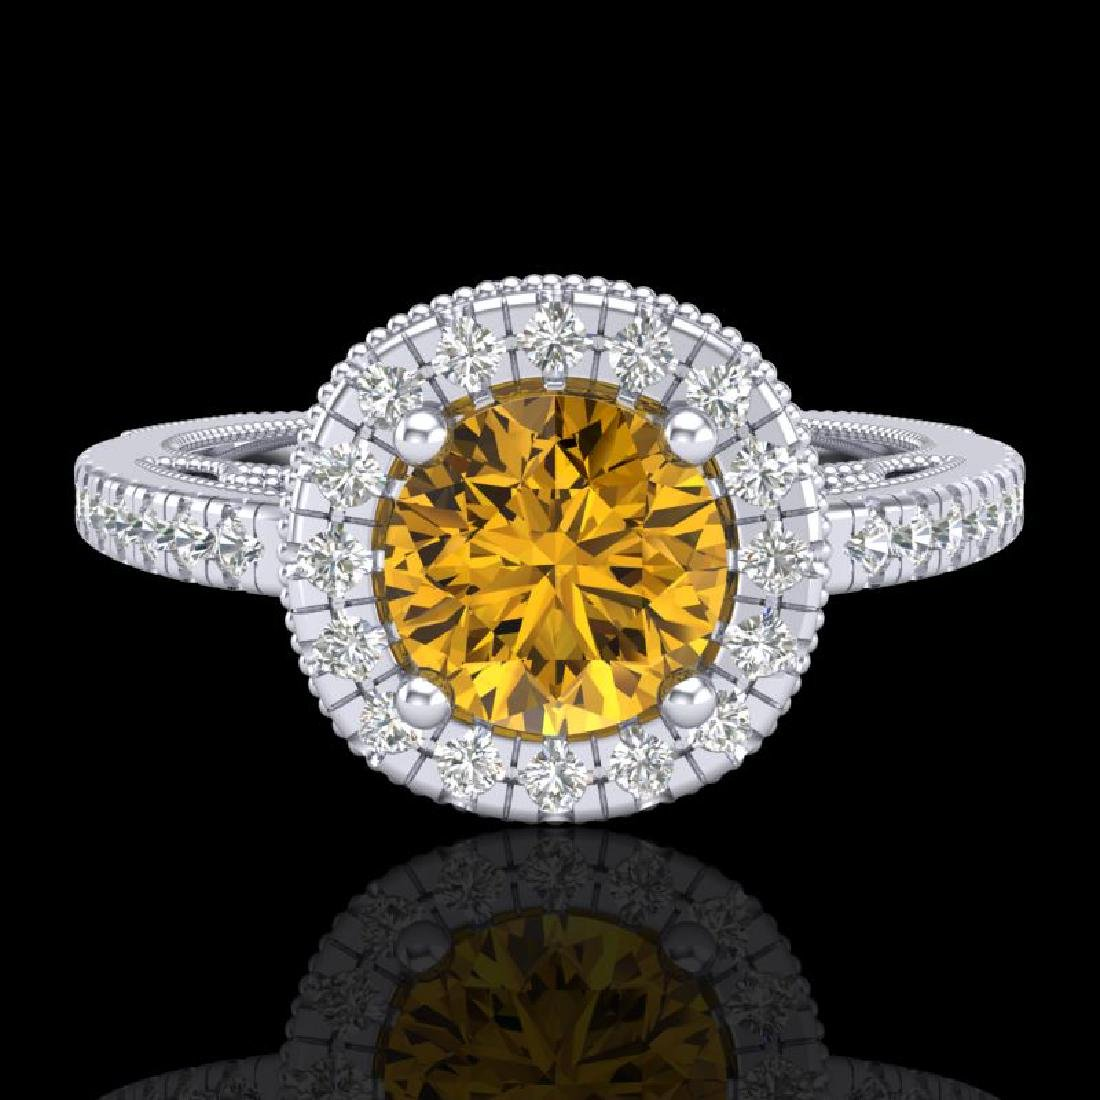 1.55 CTW Intense Fancy Yellow Diamond Engagement Art - 2